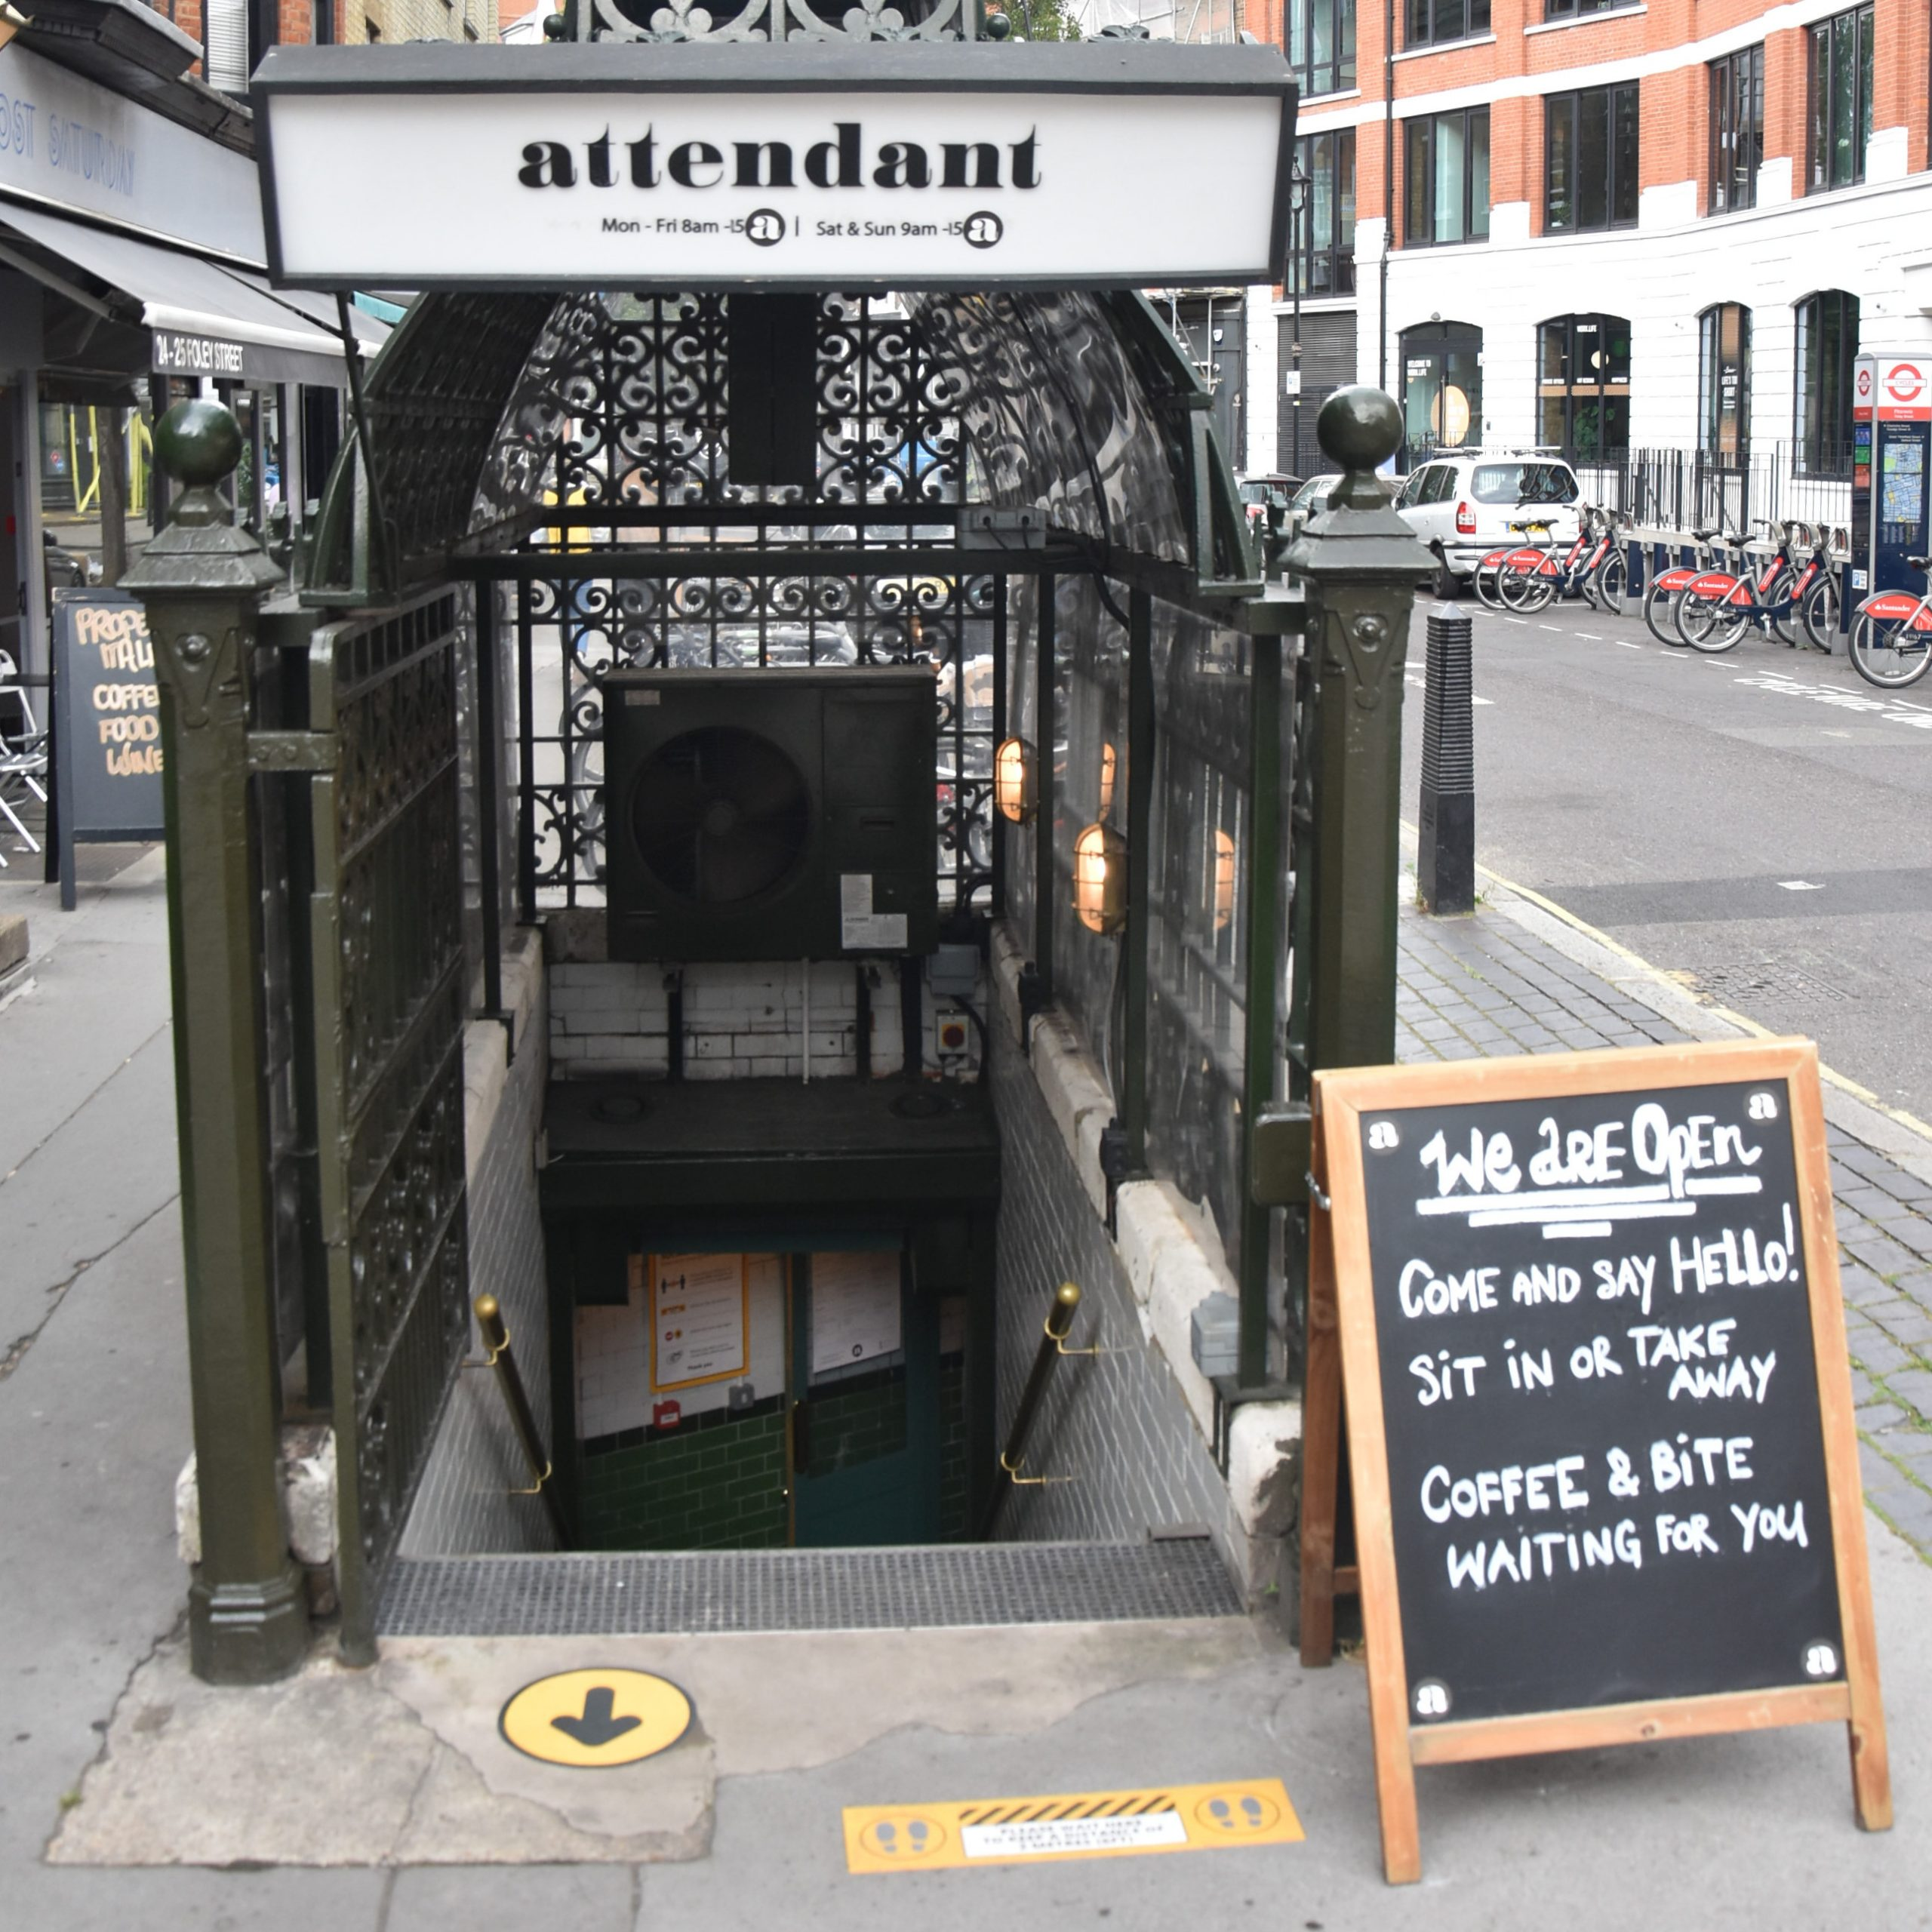 The entrance to Attendant on Foley Street in Fitzrovia, not long after reopening during the COVID-19 pandemic.